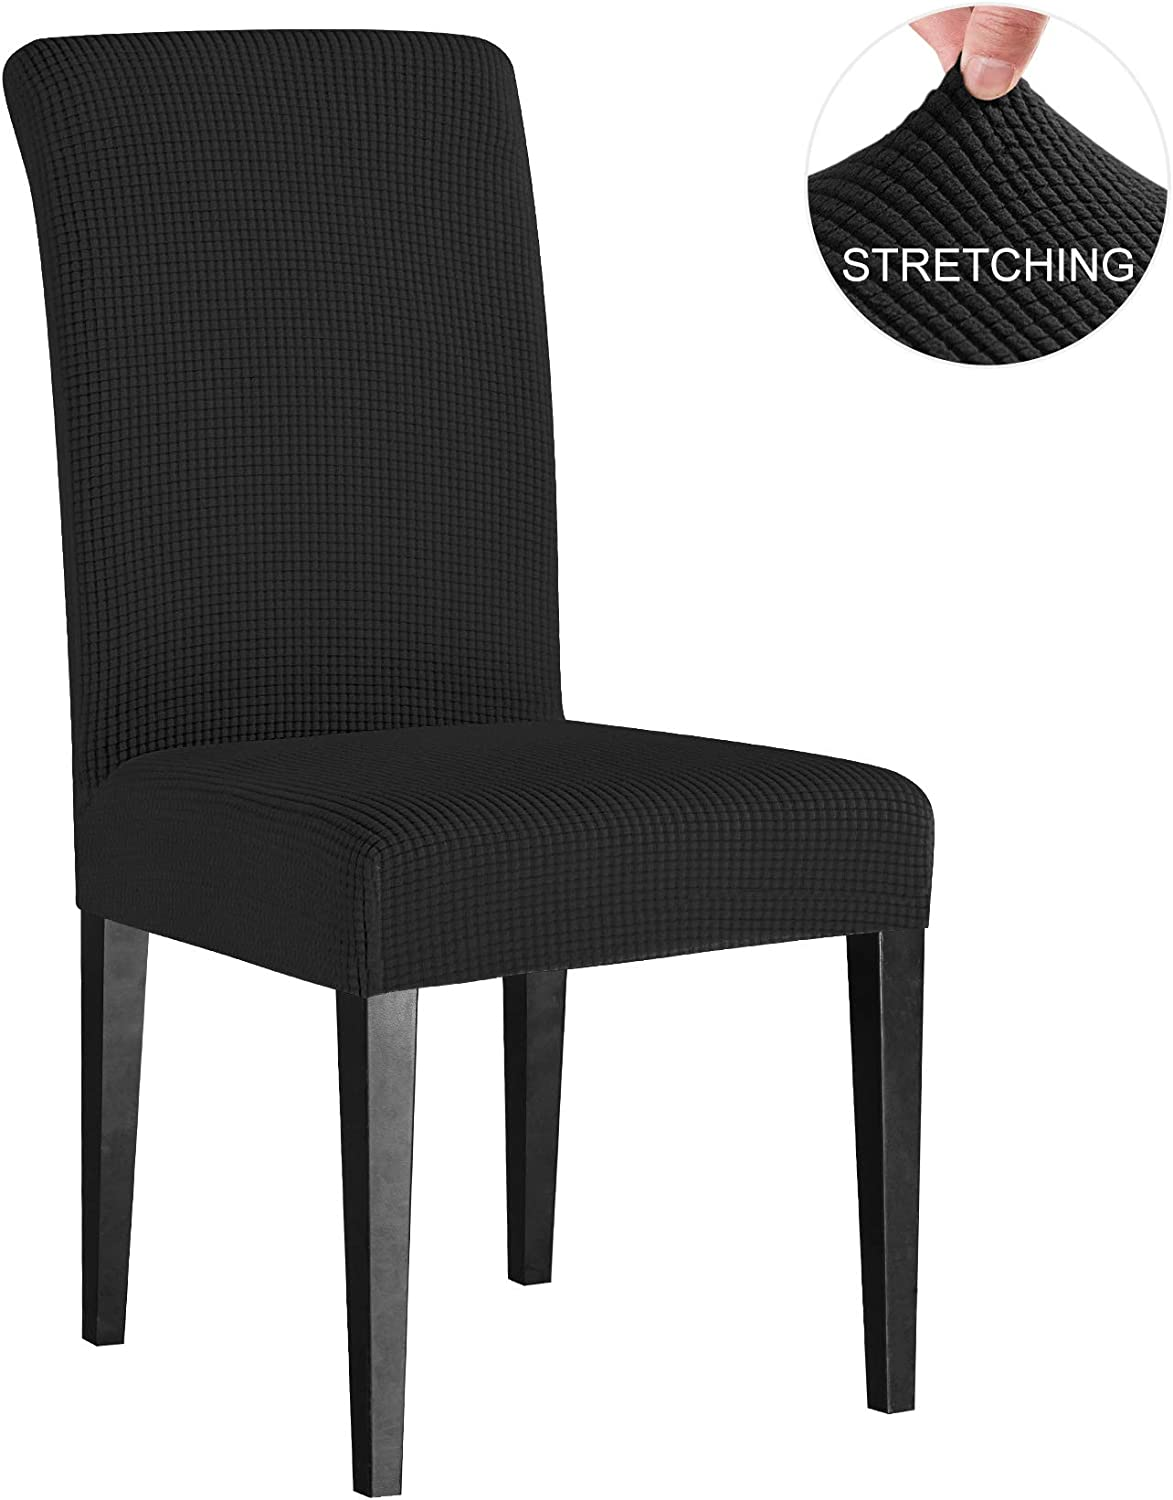 Subrtex Dining Room Chair Slipcovers Sets Stretch Furniture Protector Covers for Armchair Removable Washable Elastic Parsons Seat Case for Restaurant Hotel Ceremony, 4 Pieces, Black Checks